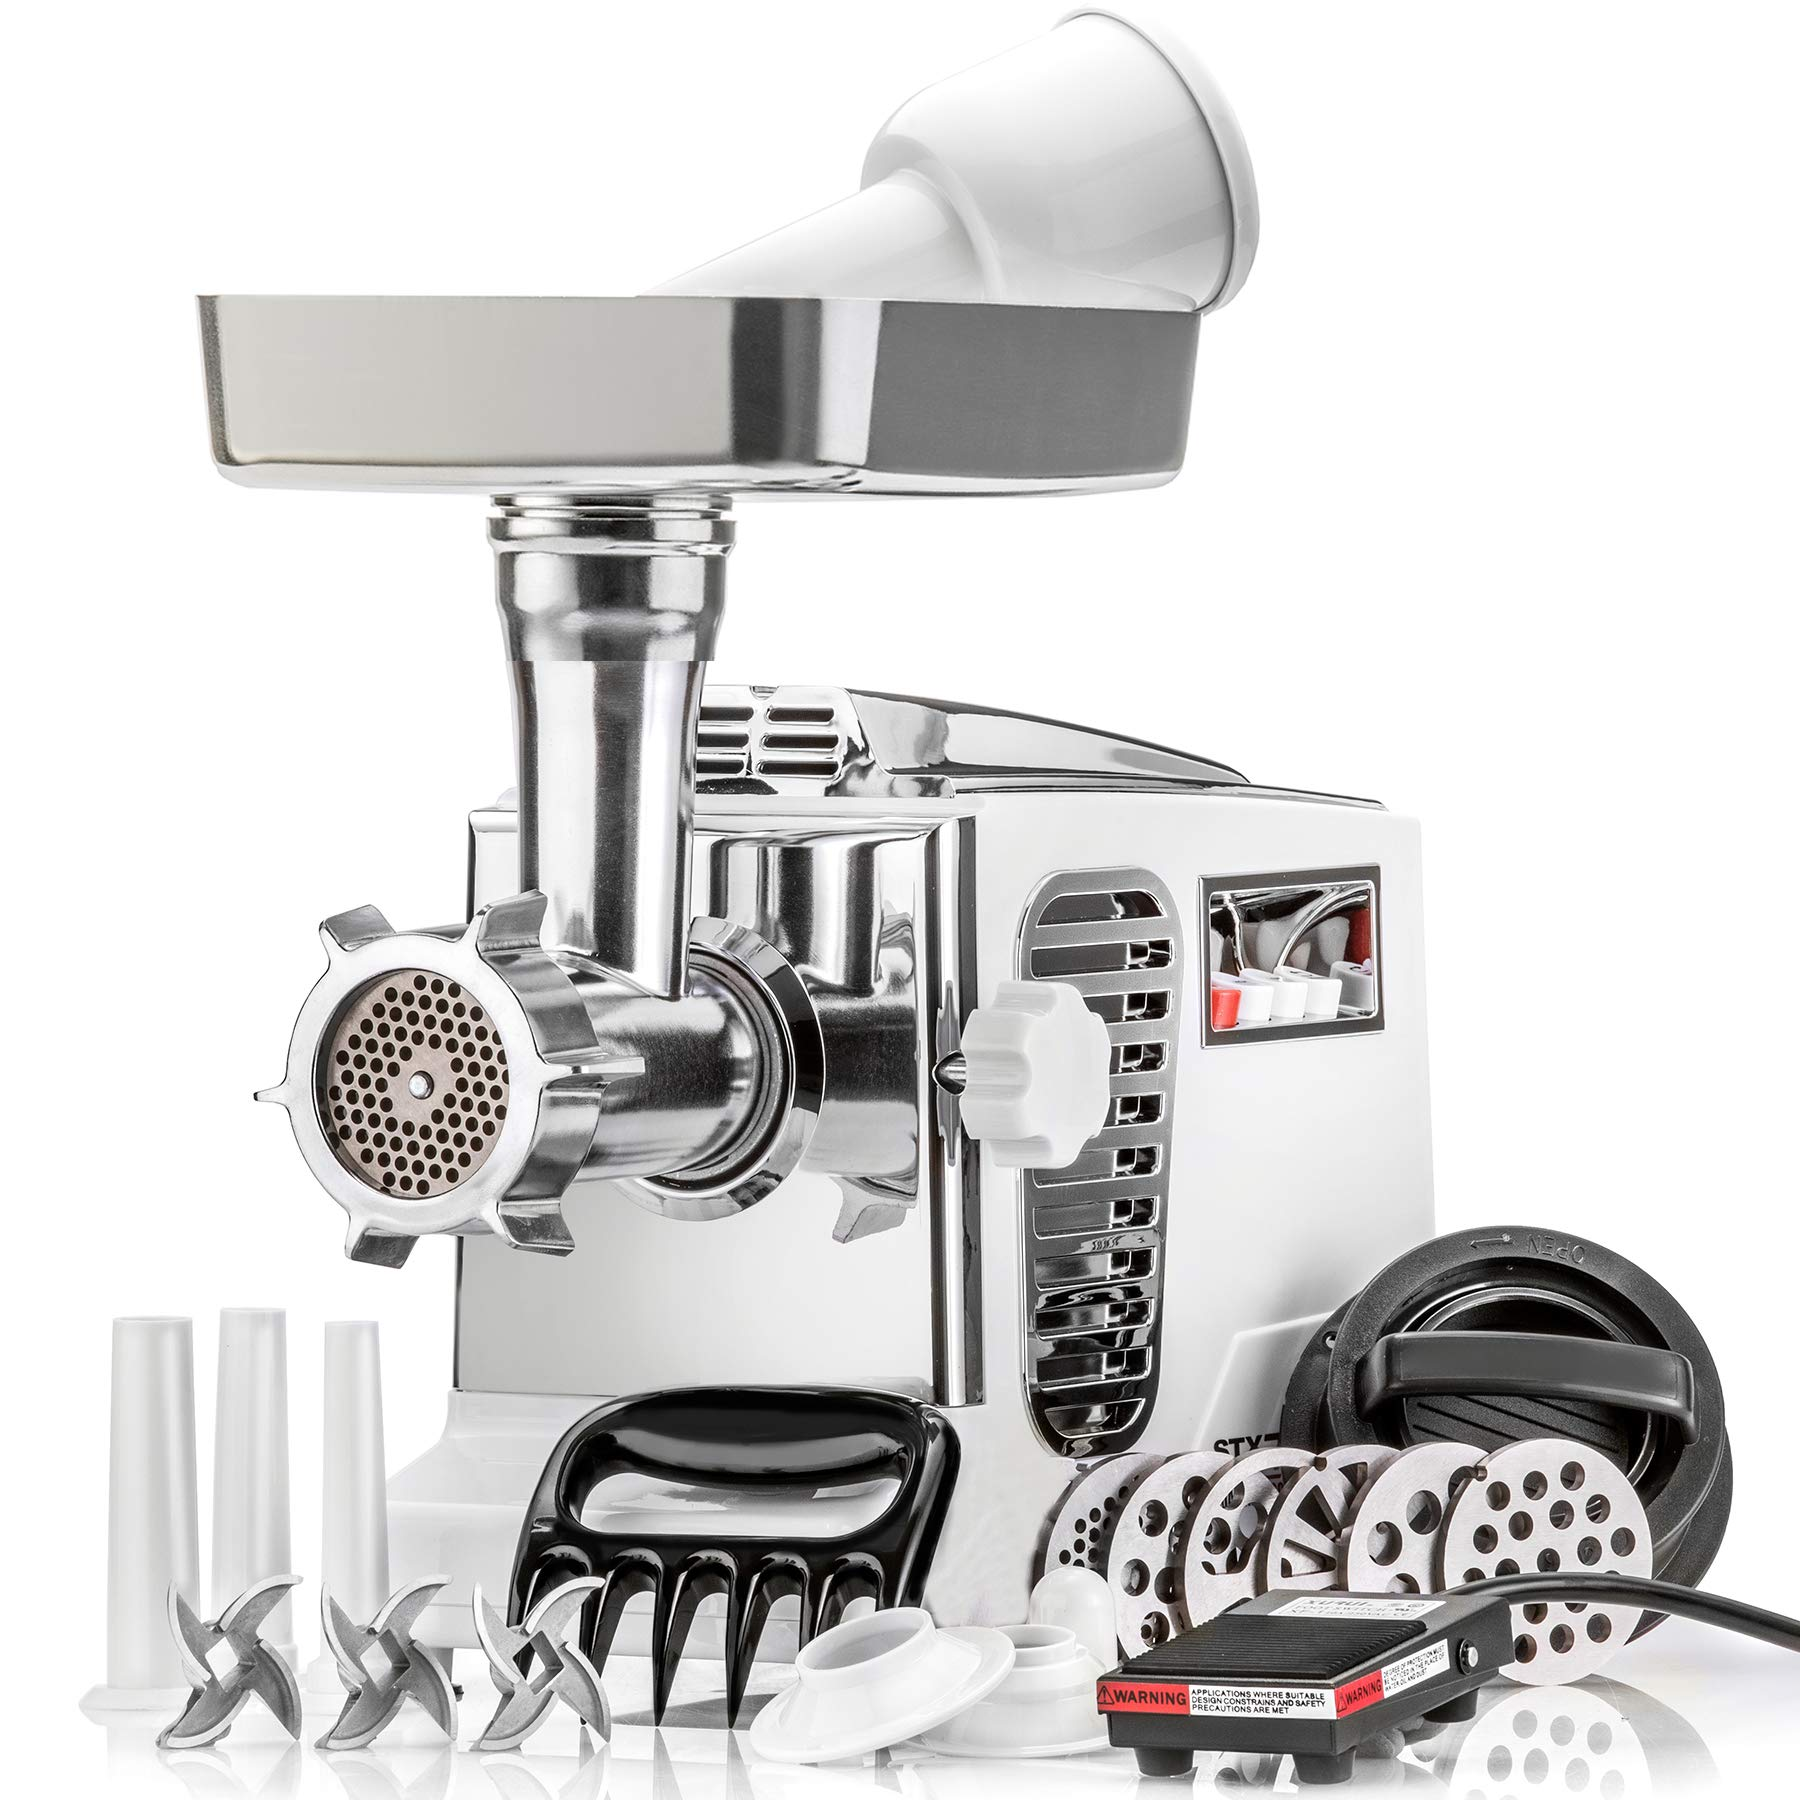 STX Turboforce II''Platinum'' w/Foot Pedal Heavy Duty Electric Meat Grinder & Sausage Stuffer: 6 Grinding Plates, 3 S/S Blades, 3 Sausage Tubes, Kubbe, 2 Meat Claws, Burger-Slider Patty Maker - White by STX INTERNATIONAL